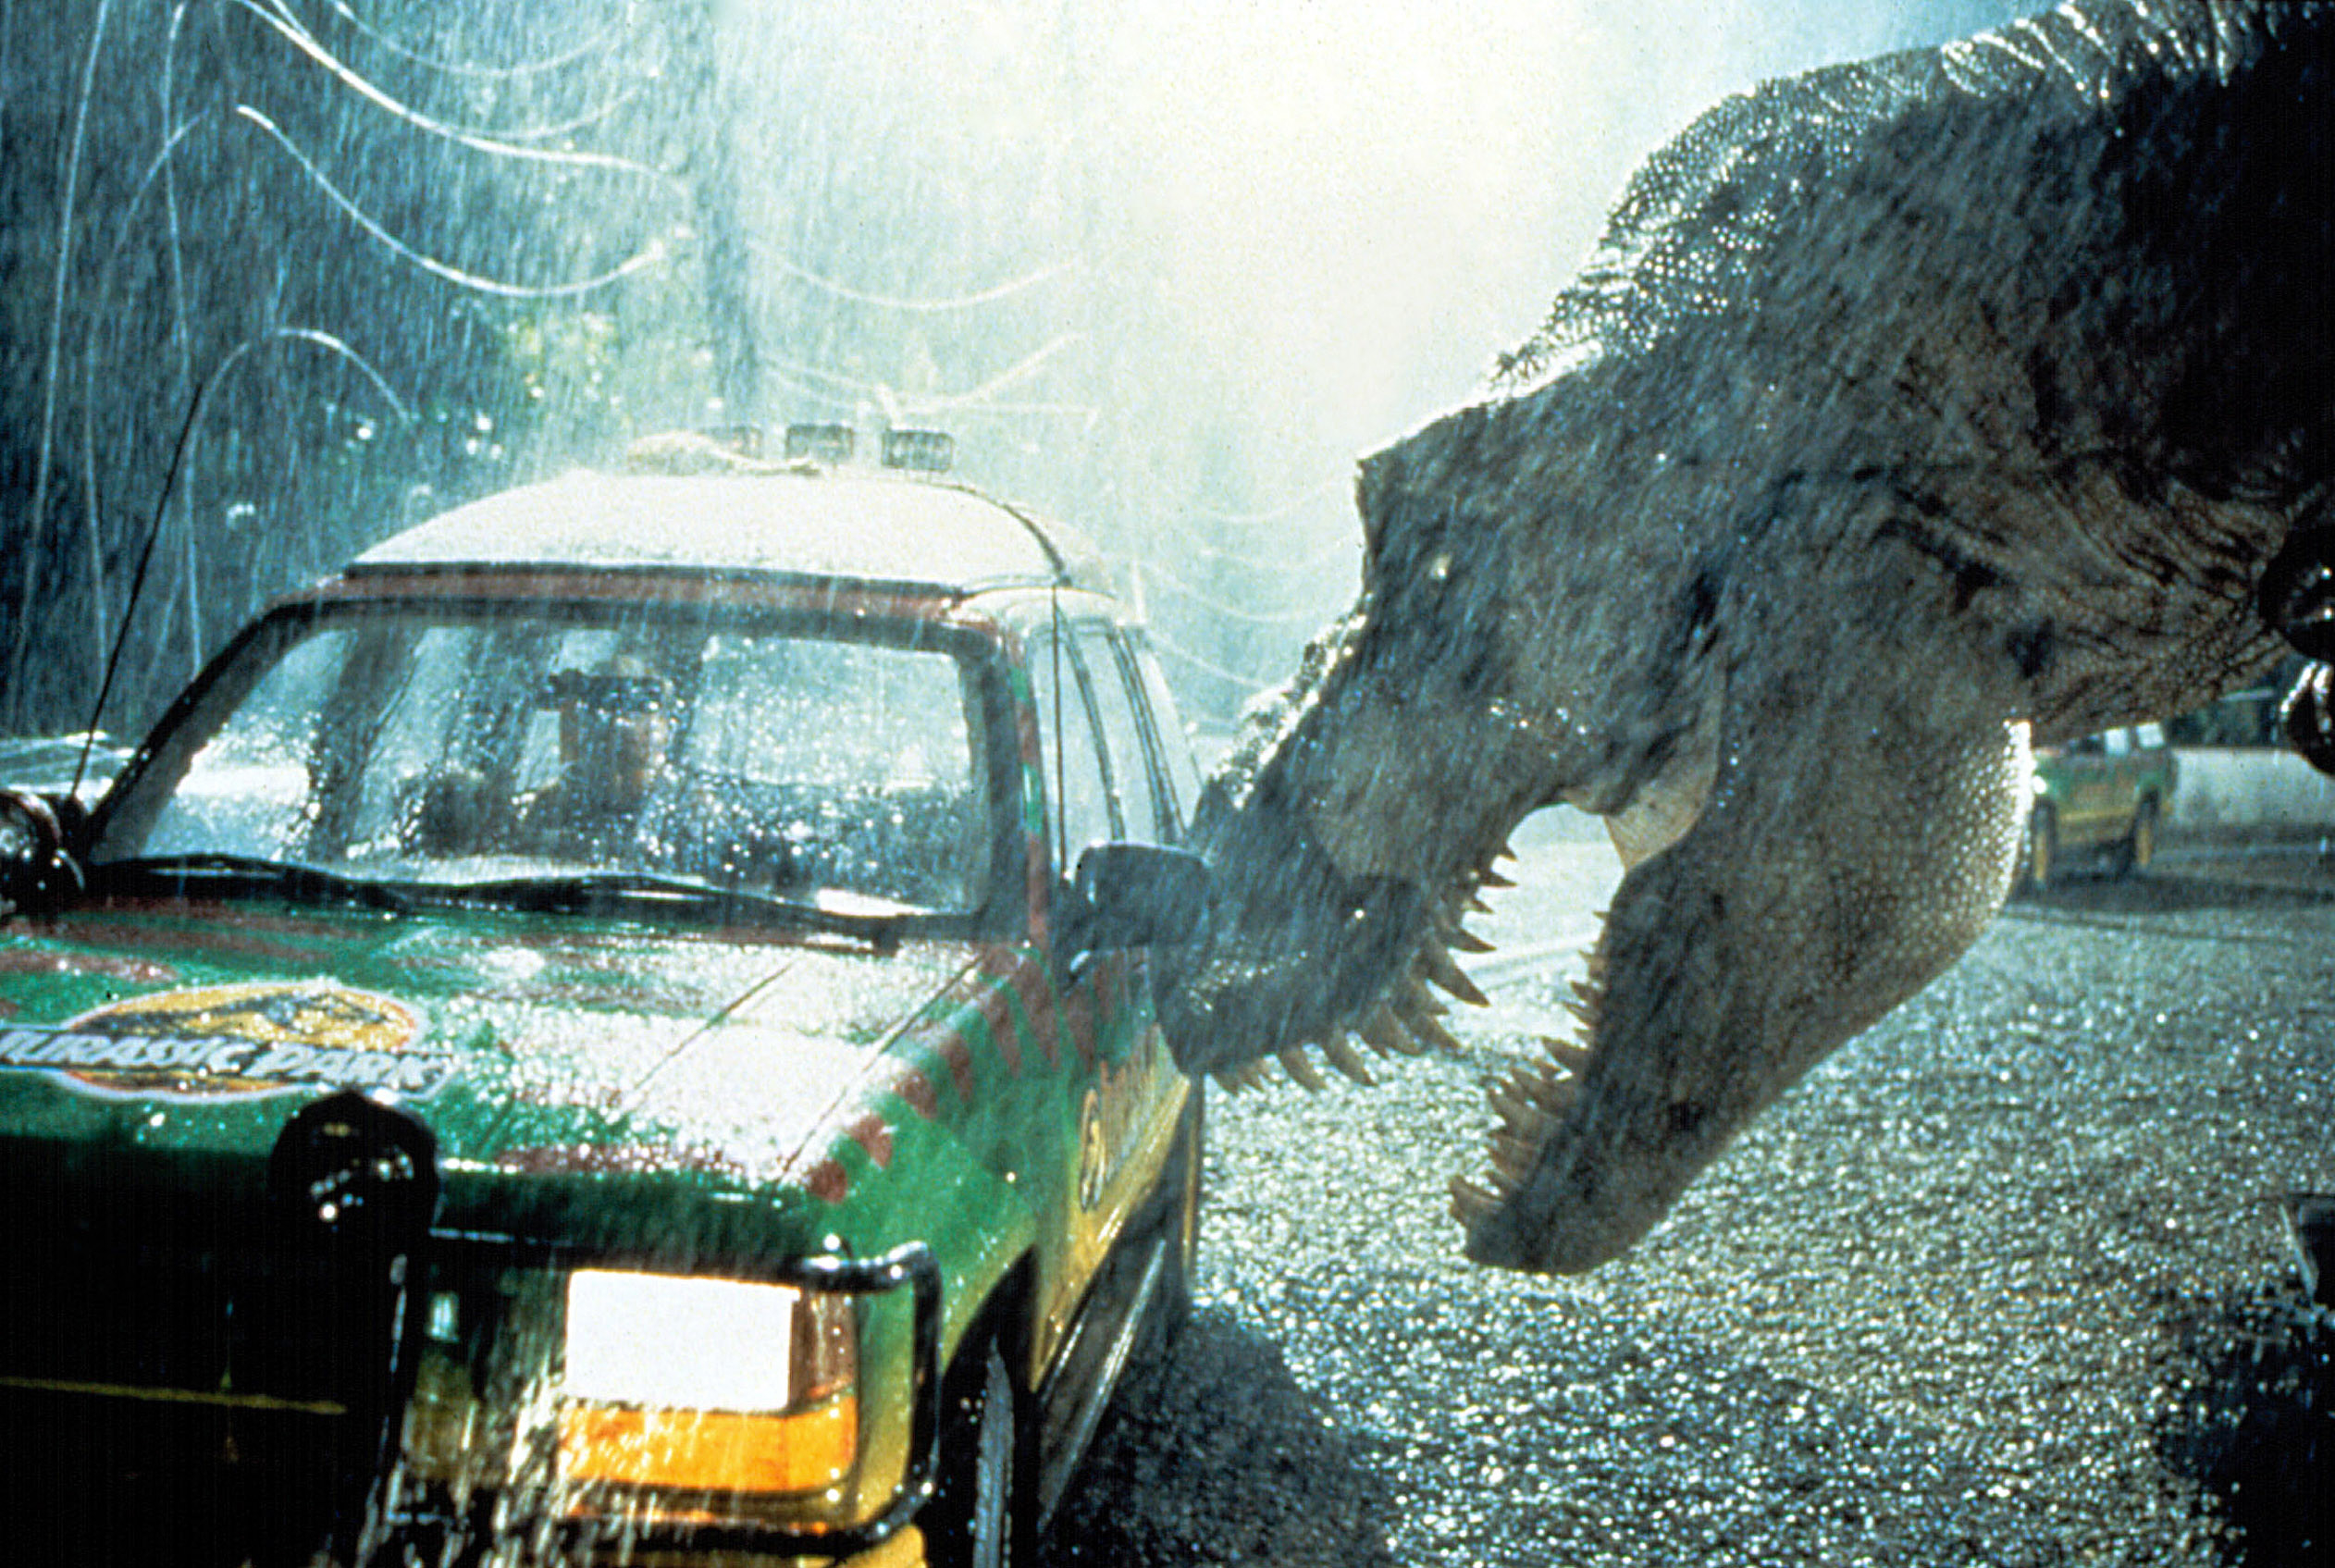 """A huge dinosaur approaches a car during a scene in """"Jurassic Park"""""""